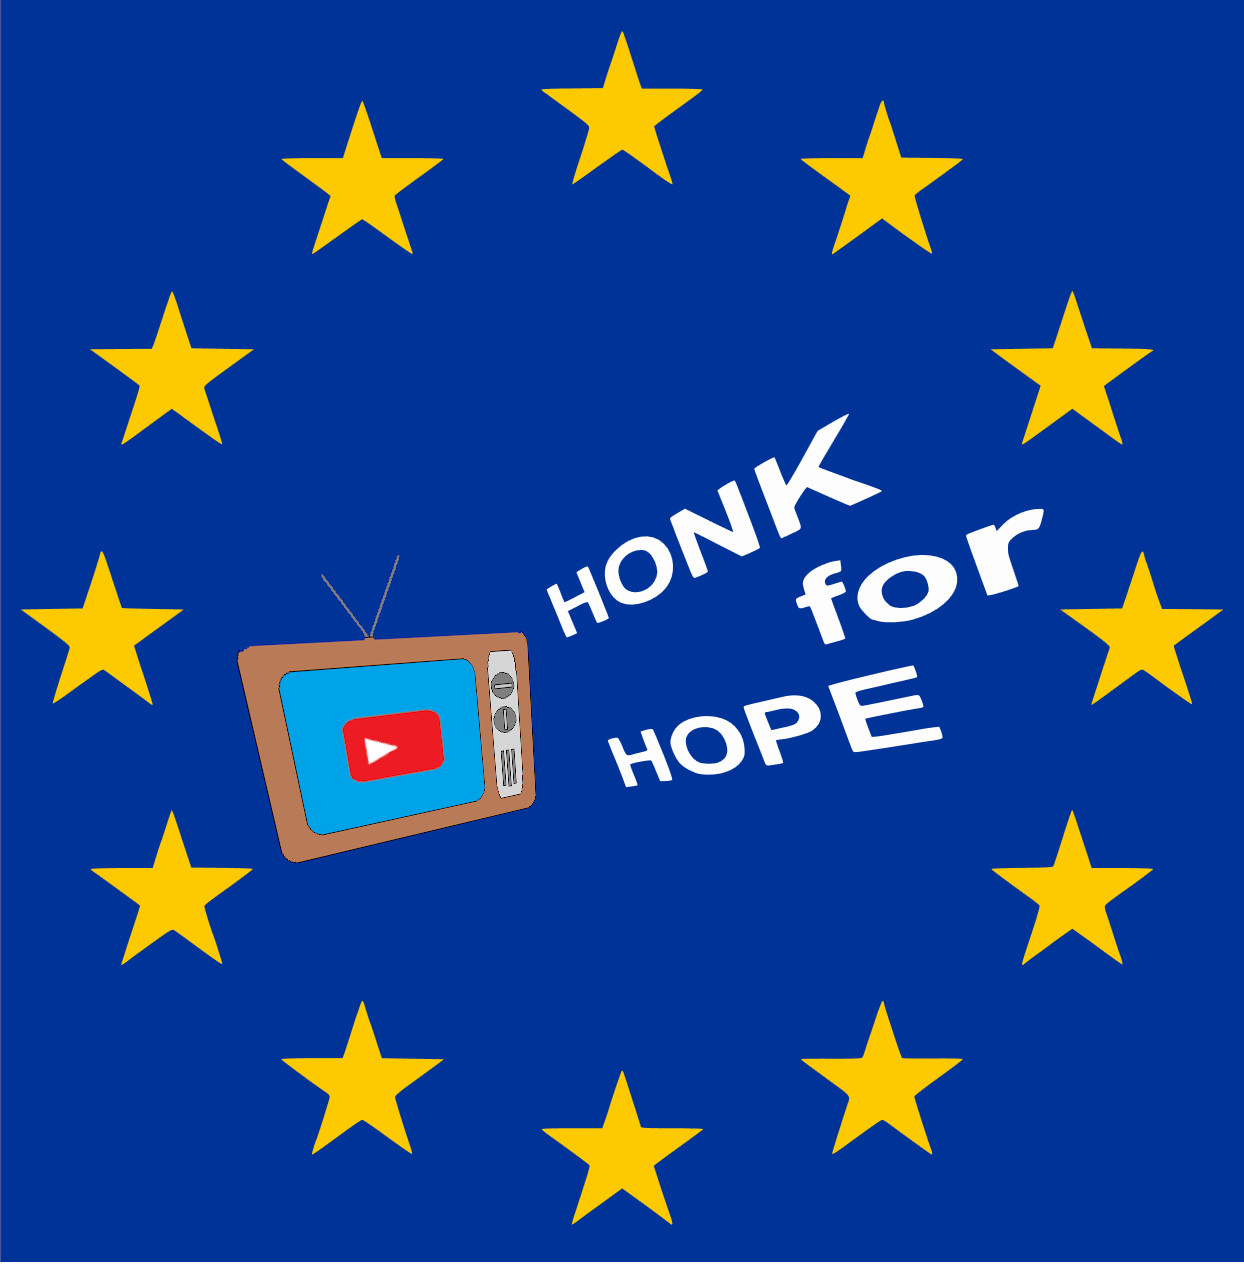 motorcoach travel association #honkforhope on YouTube